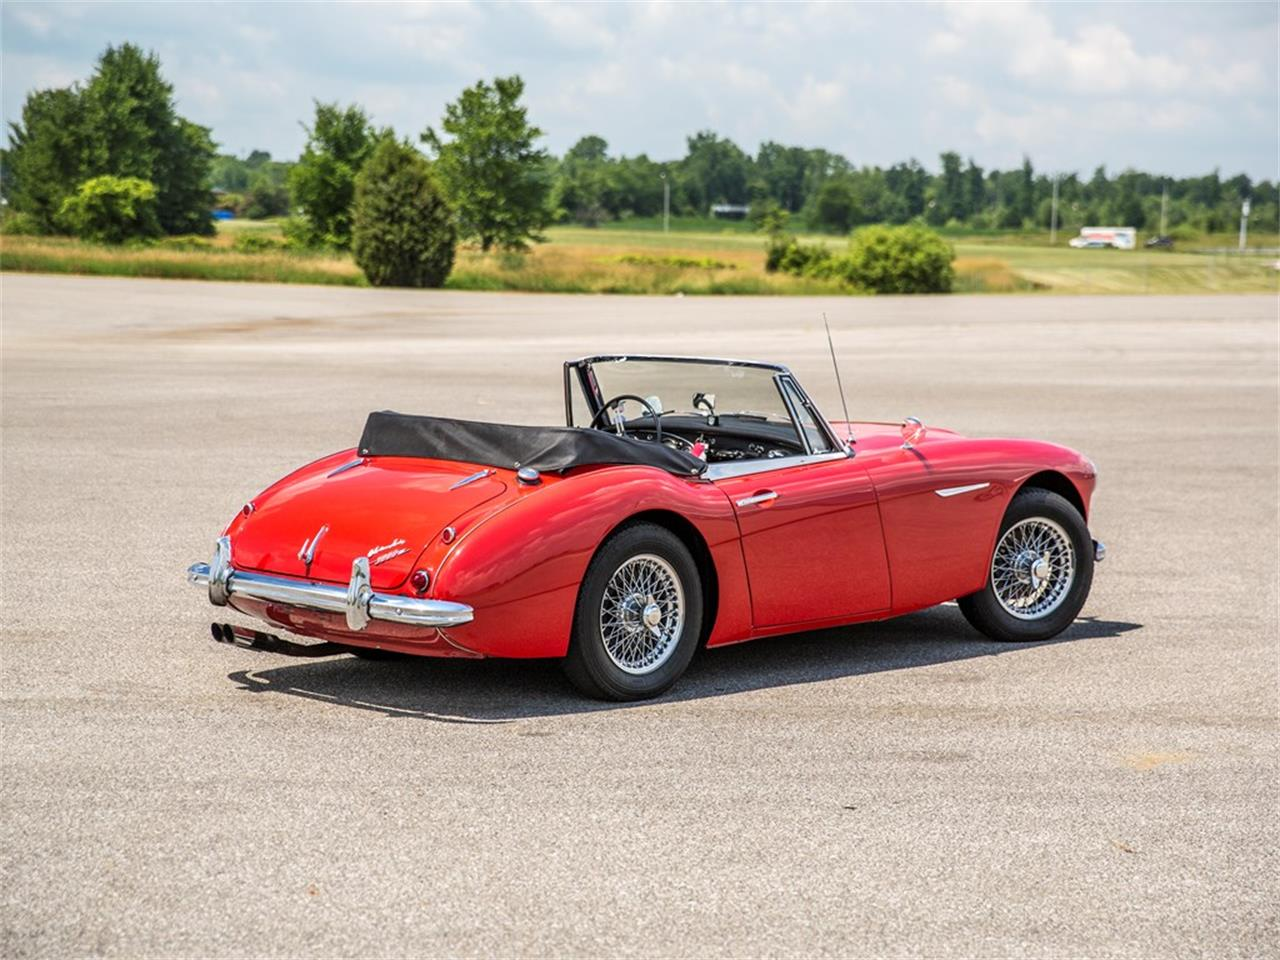 Large Picture of Classic 1963 Austin-Healey 3000 Mk II BJ7 located in Auburn Indiana Auction Vehicle Offered by RM Sotheby's - NUCB